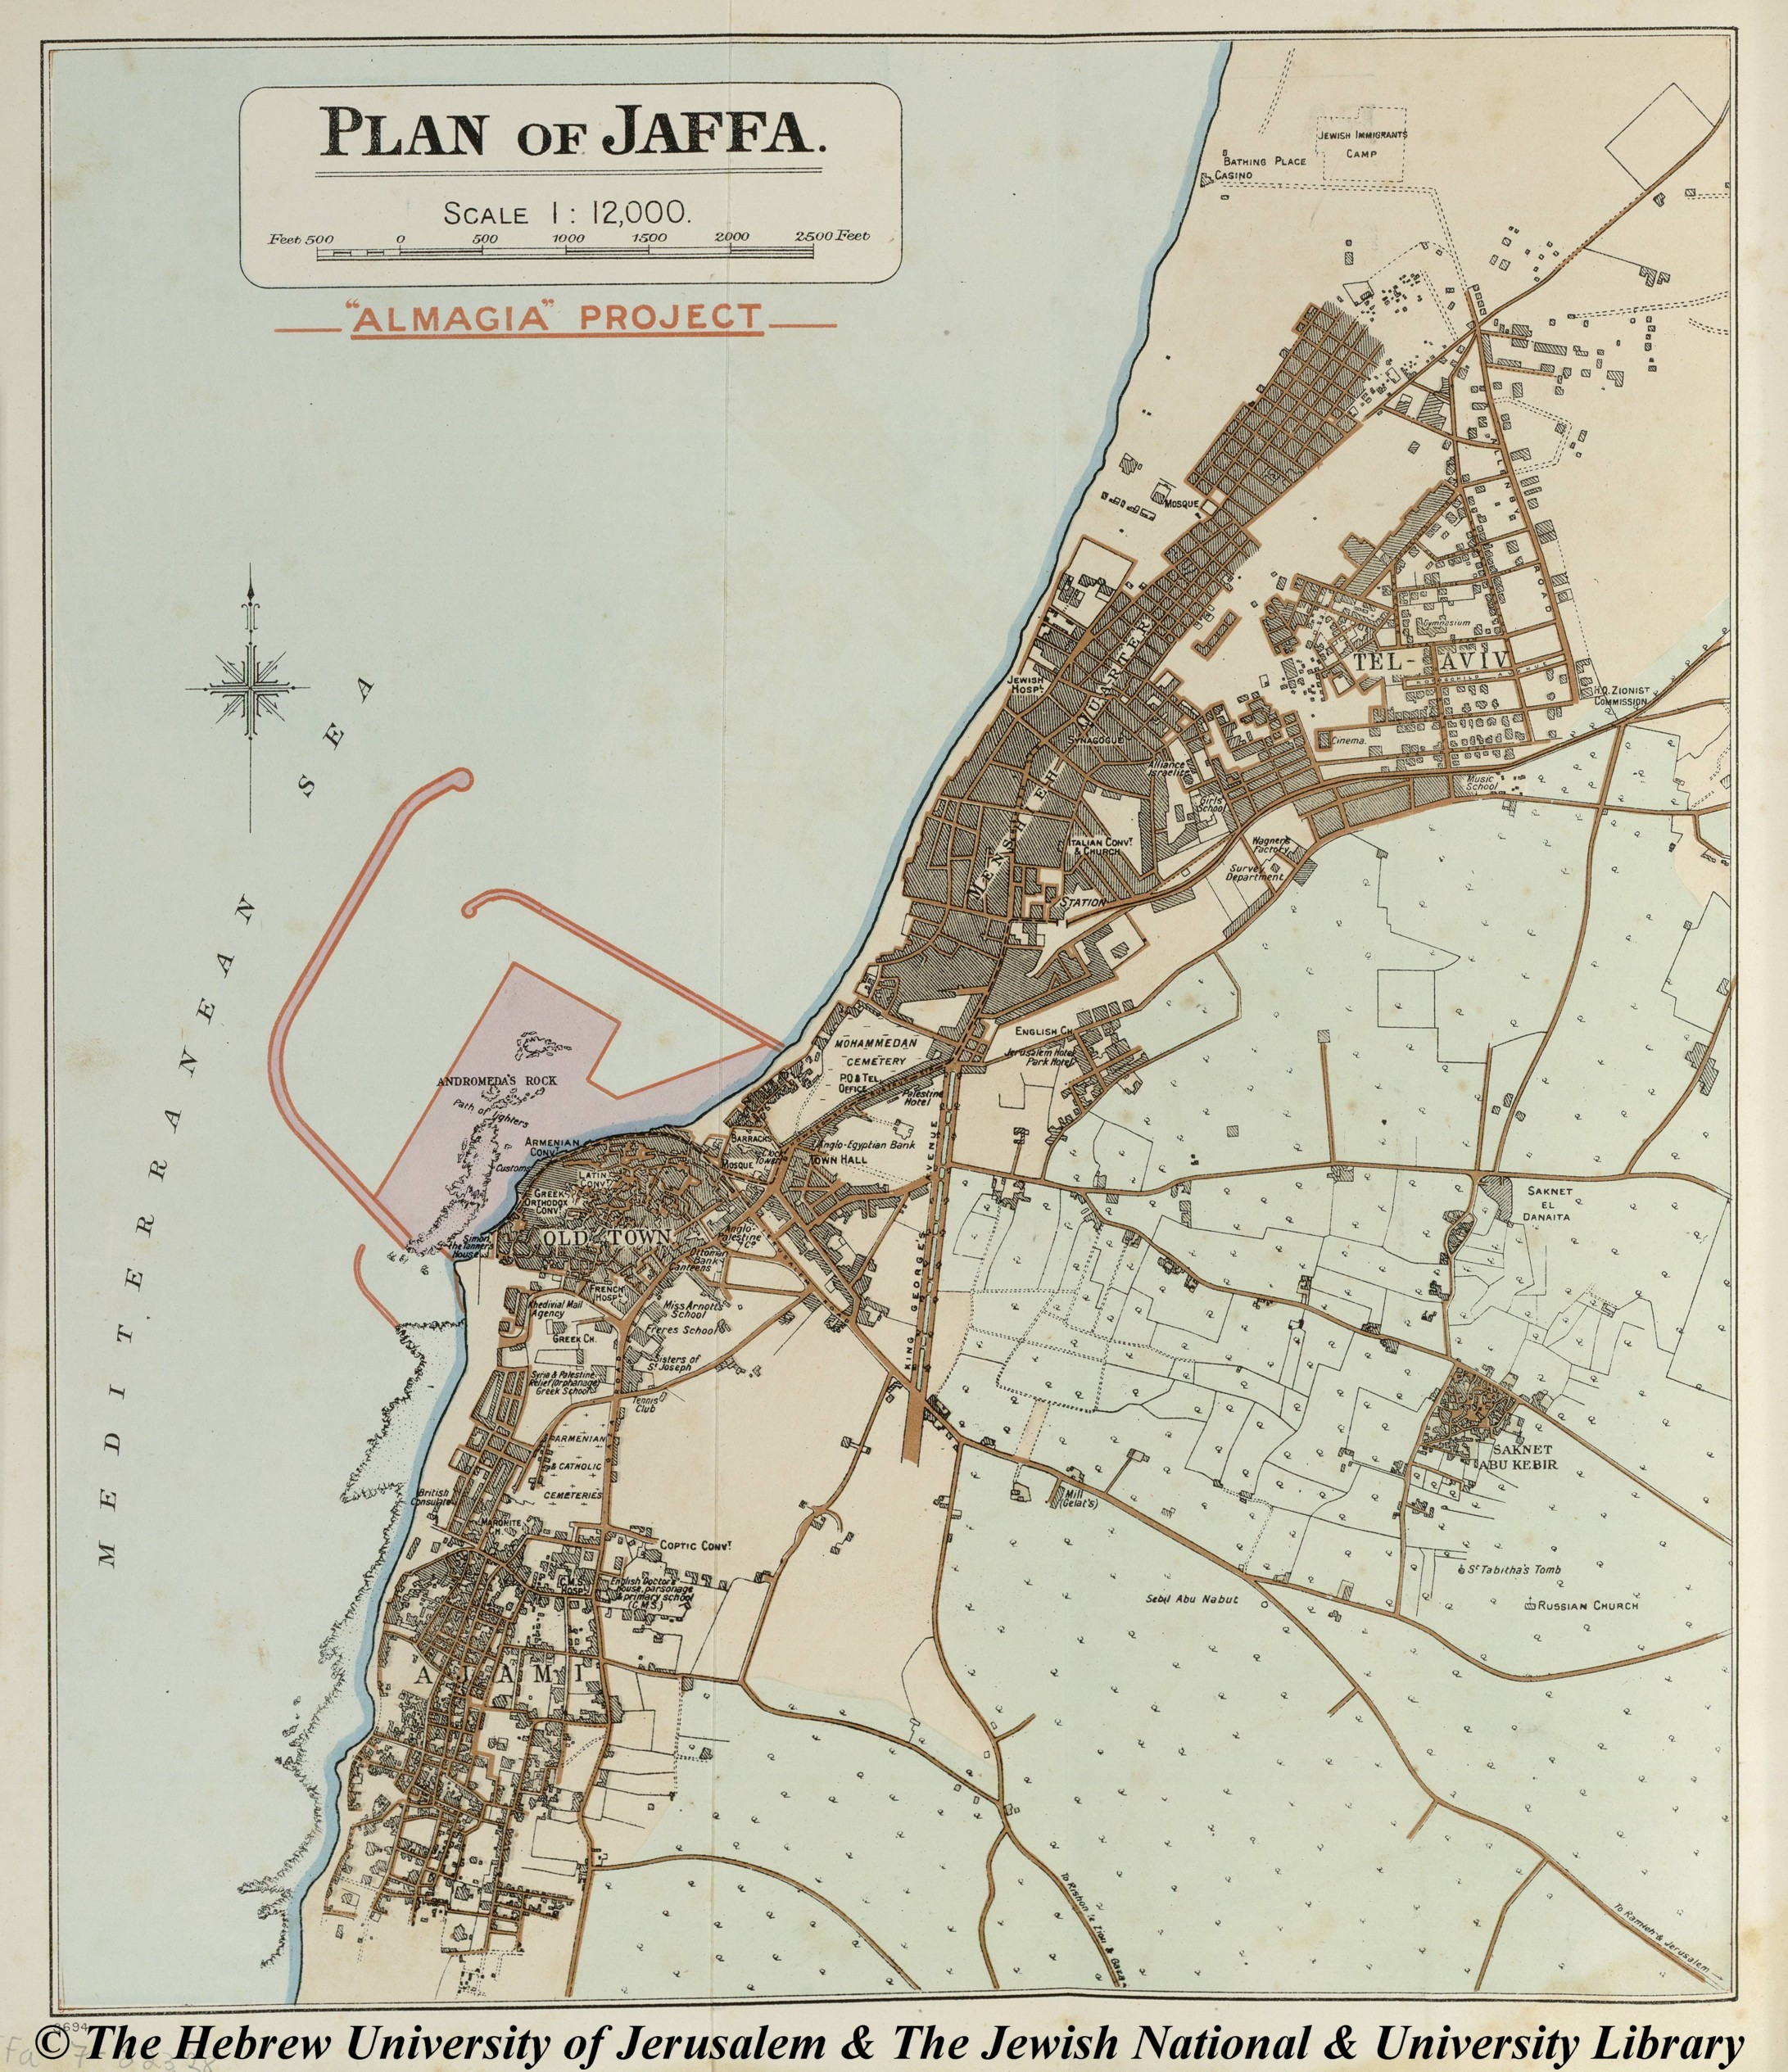 us maps with cities with Palmer 1923 Jaffa B on 485192559828487402 together with Map additionally Index furthermore Oman Wadi Ghul likewise Niamey.